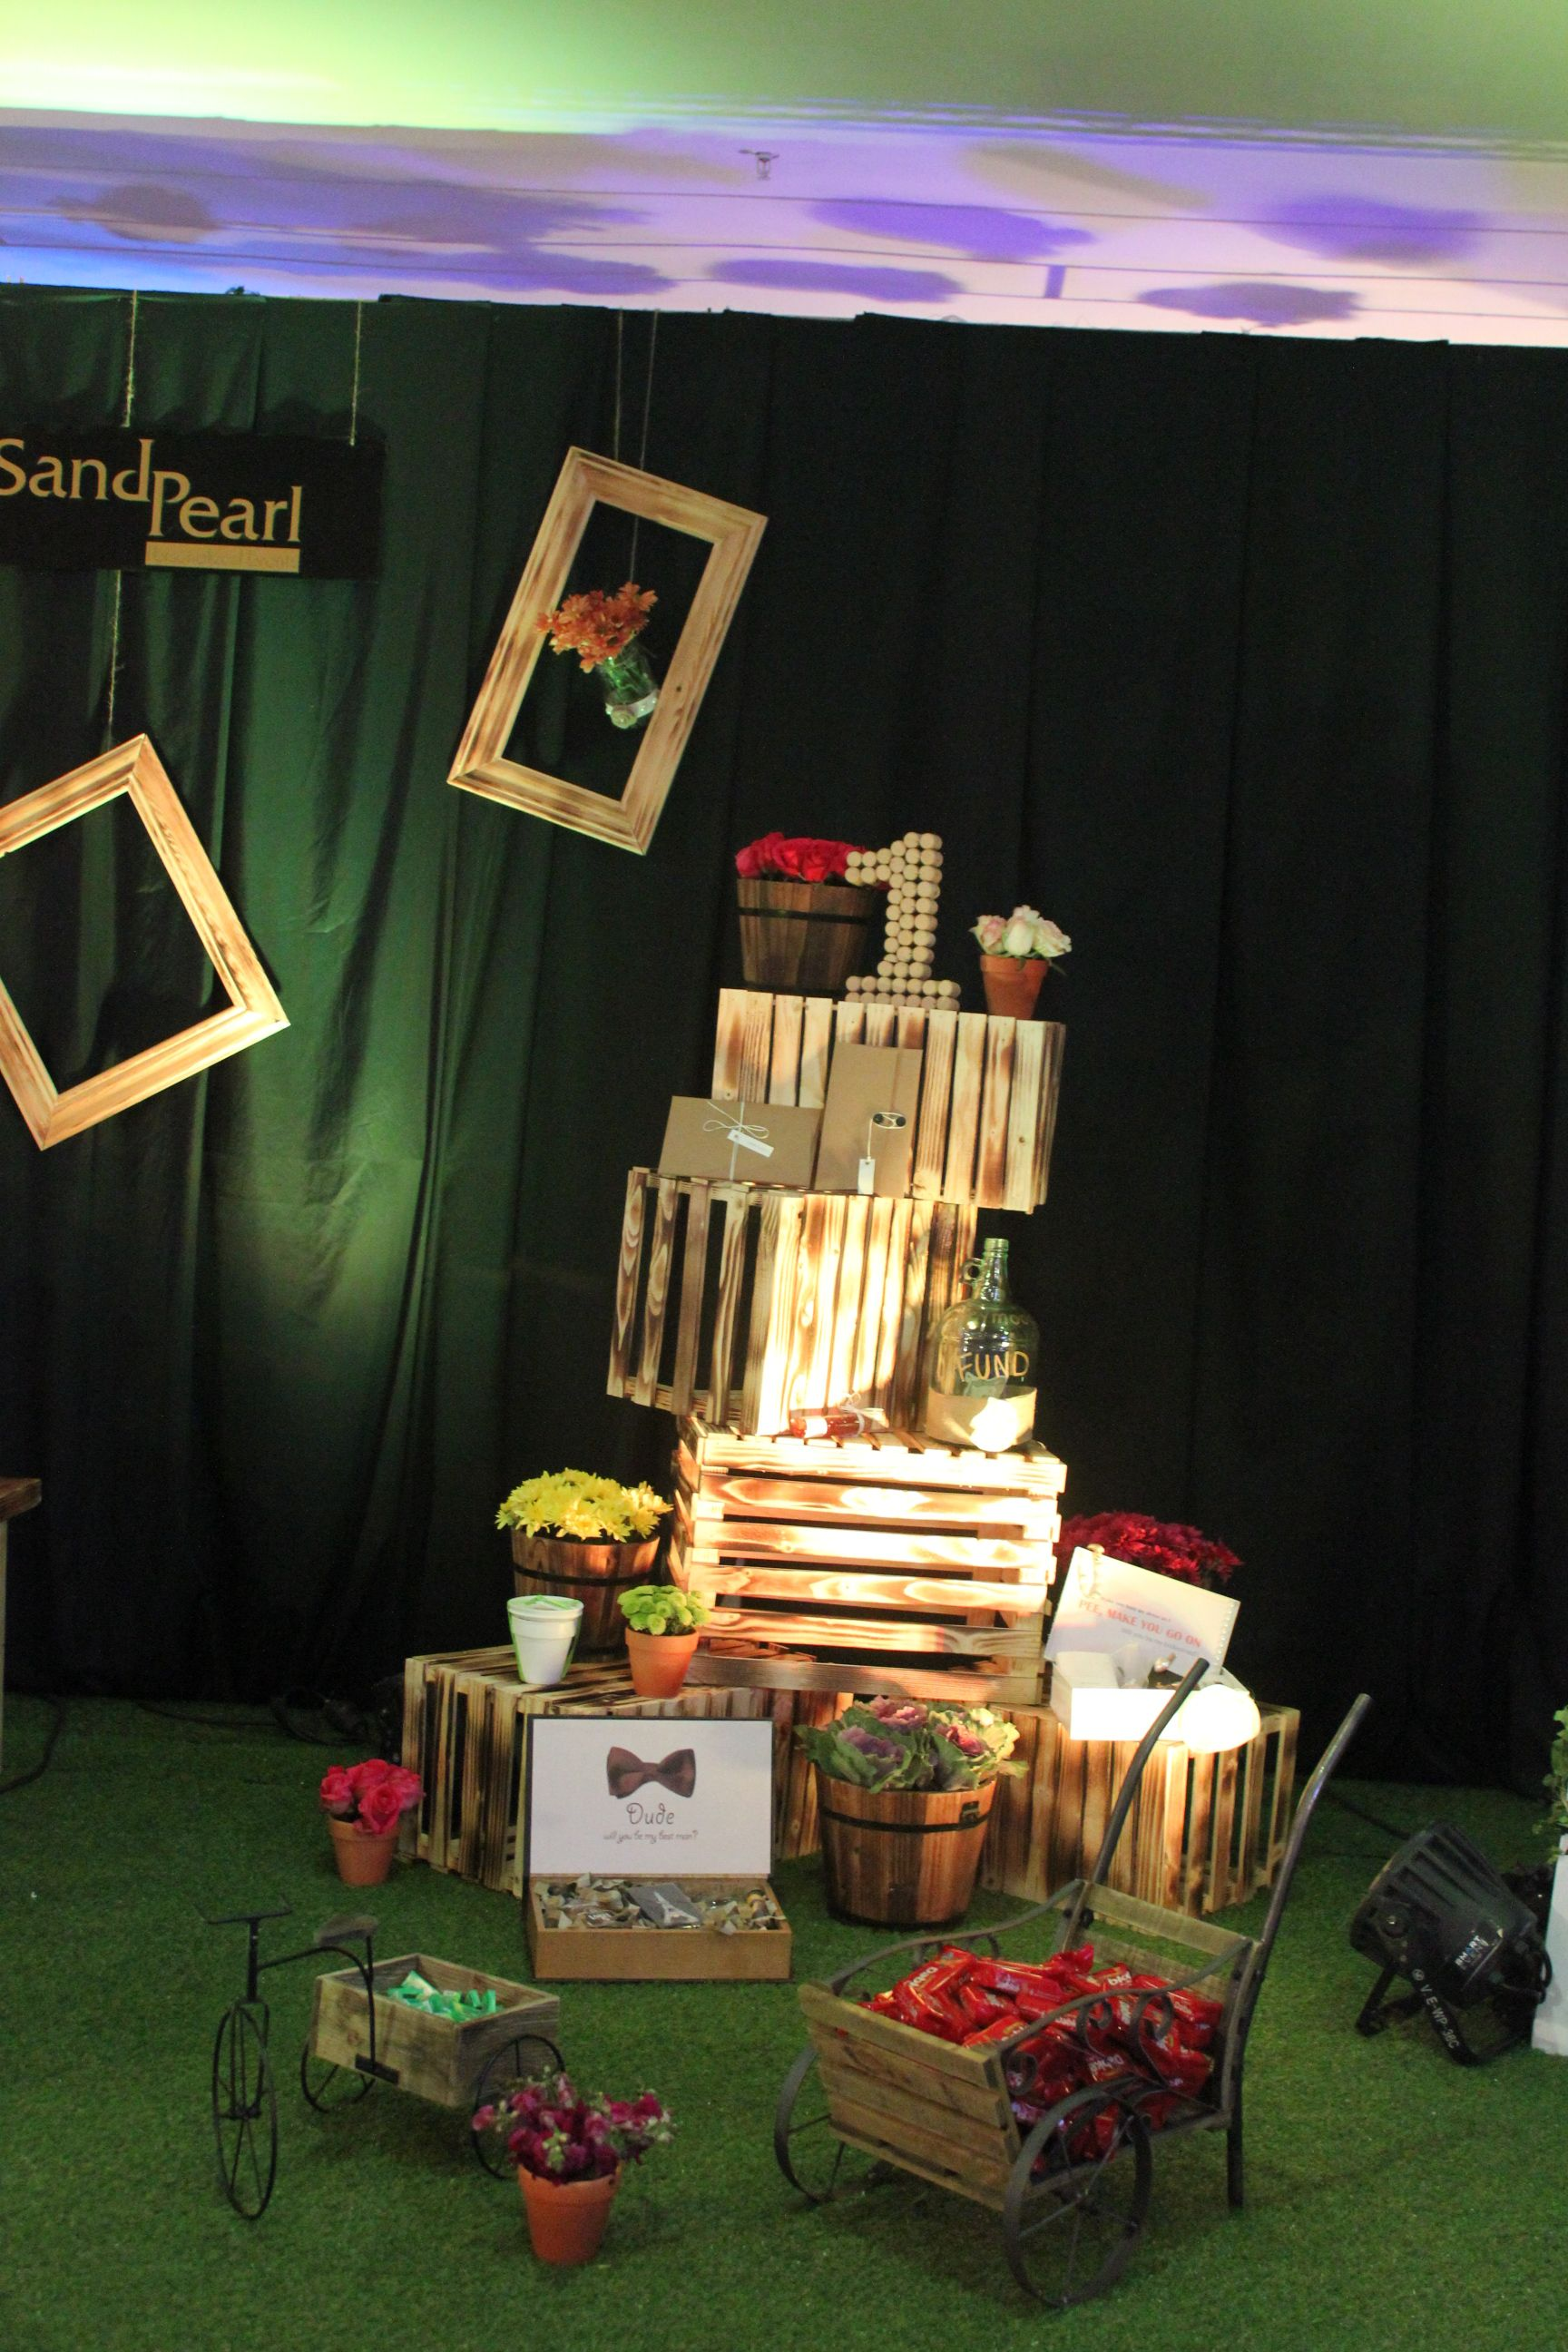 SandPearl Stand